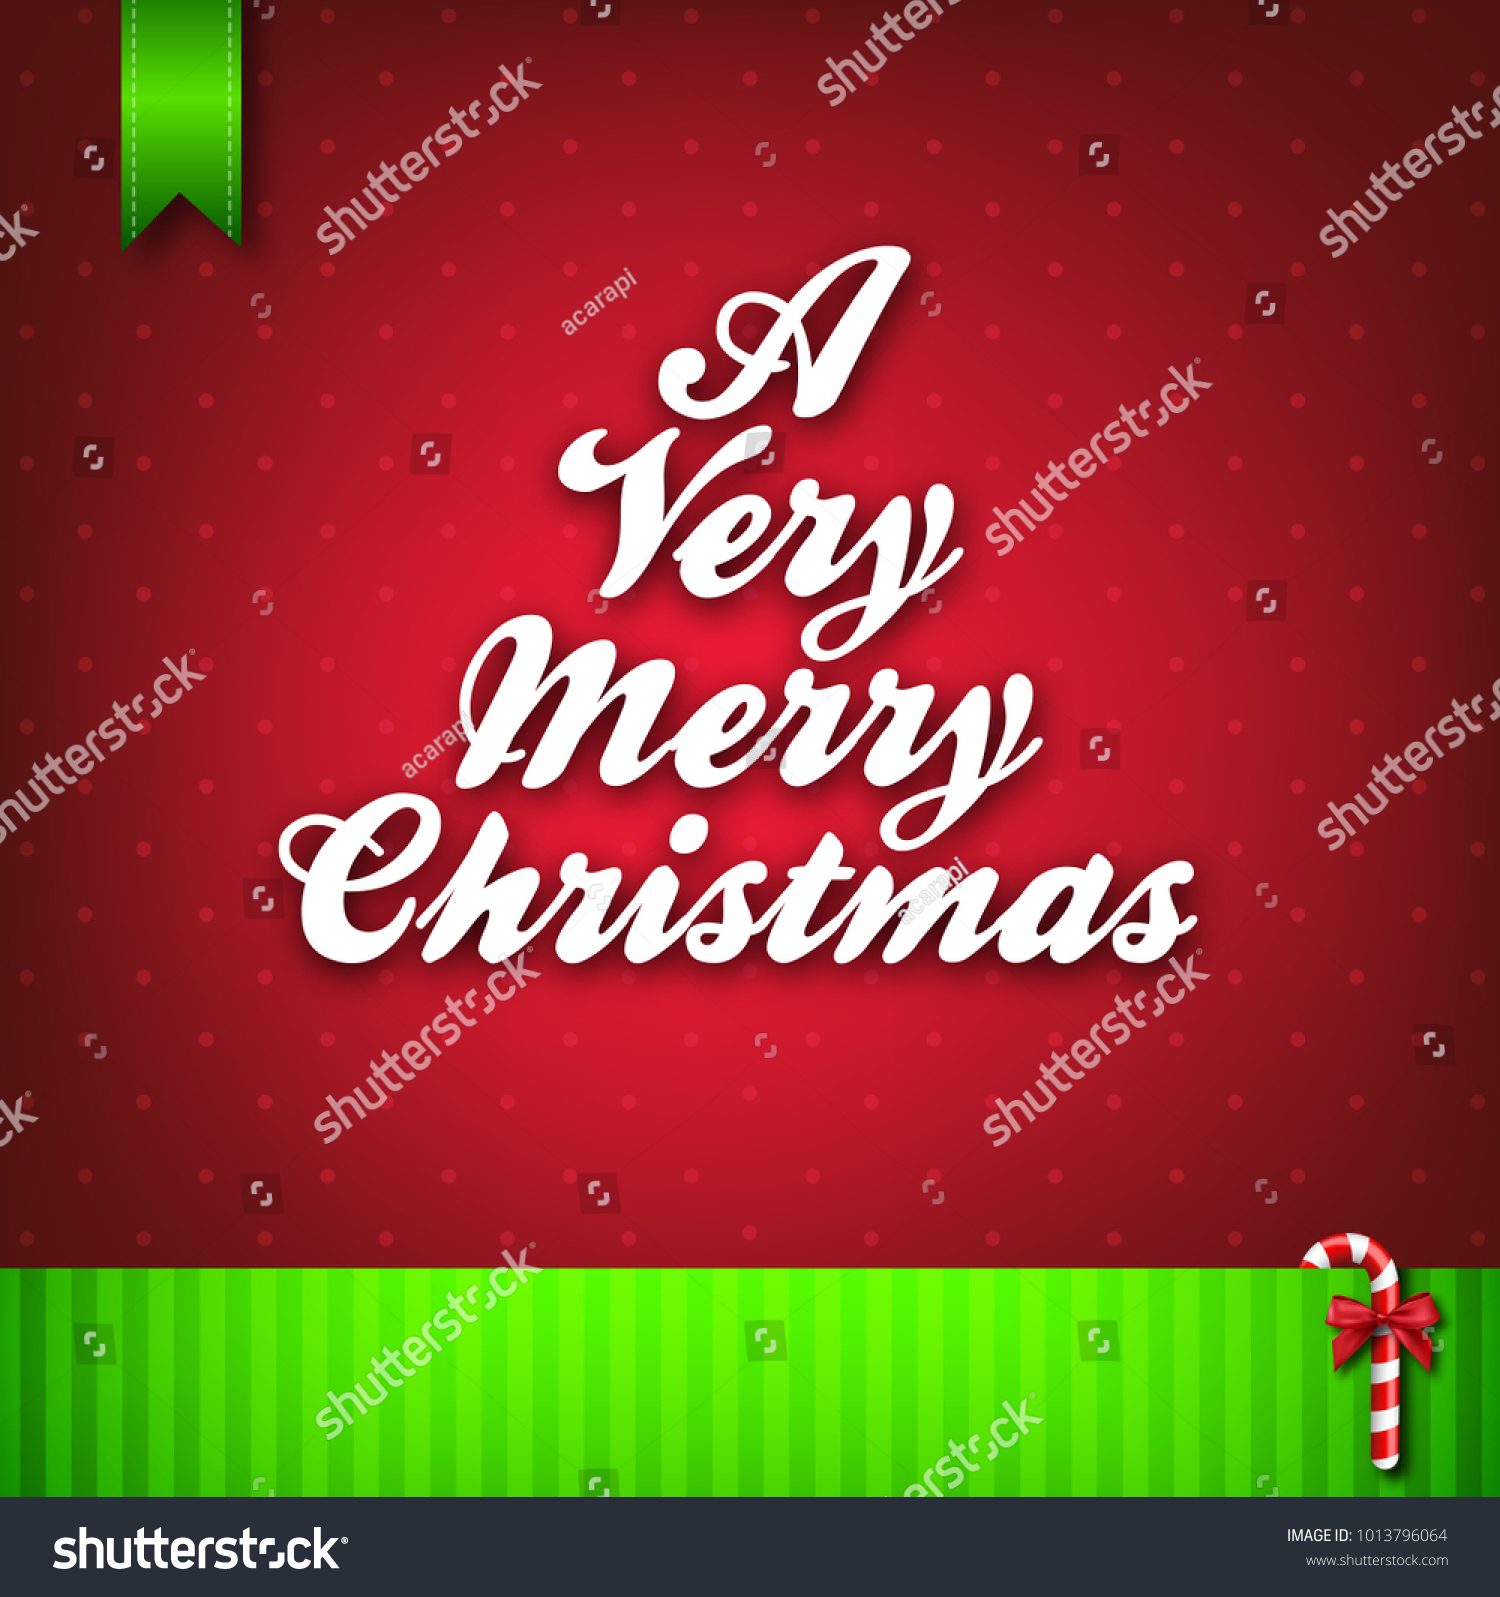 Very Merry Christmas Wording On Red Stock Illustration 1013796064